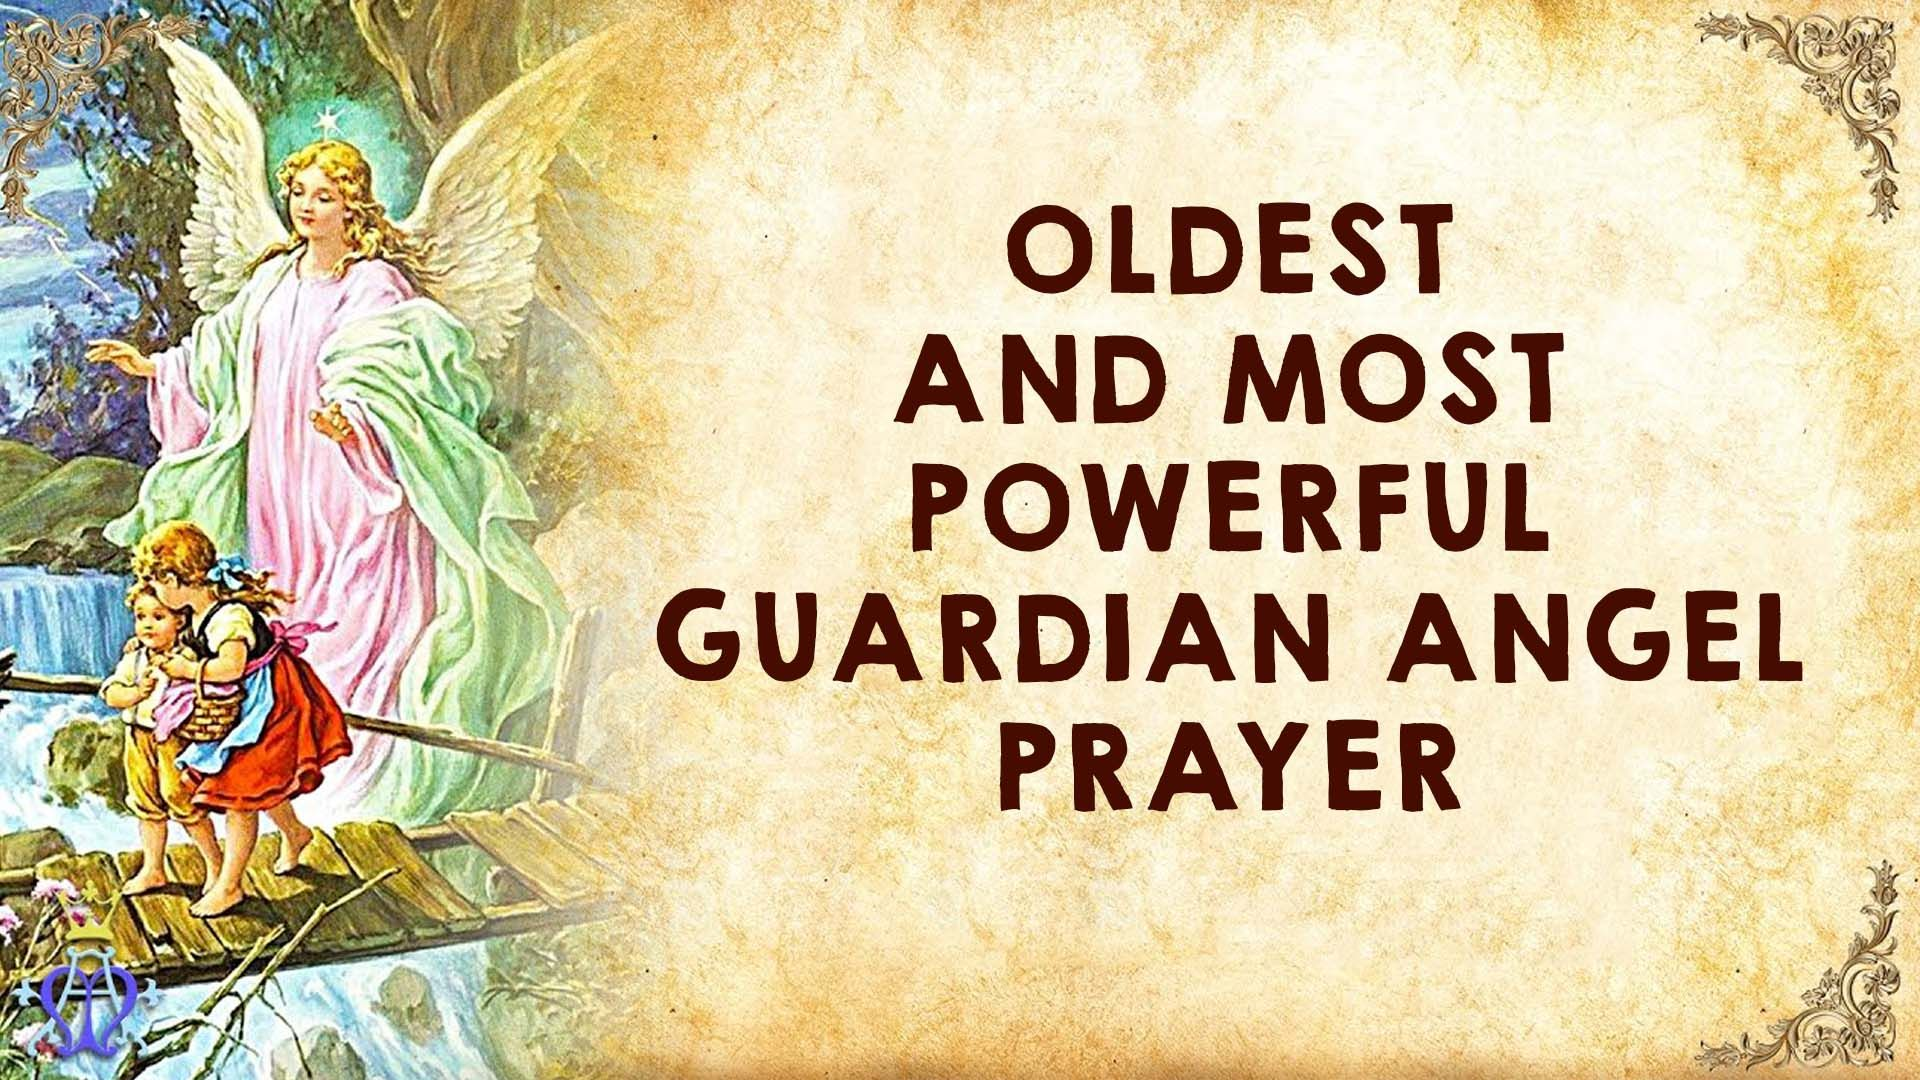 Do You Know The Oldest And Most Powerful Guardian Angel